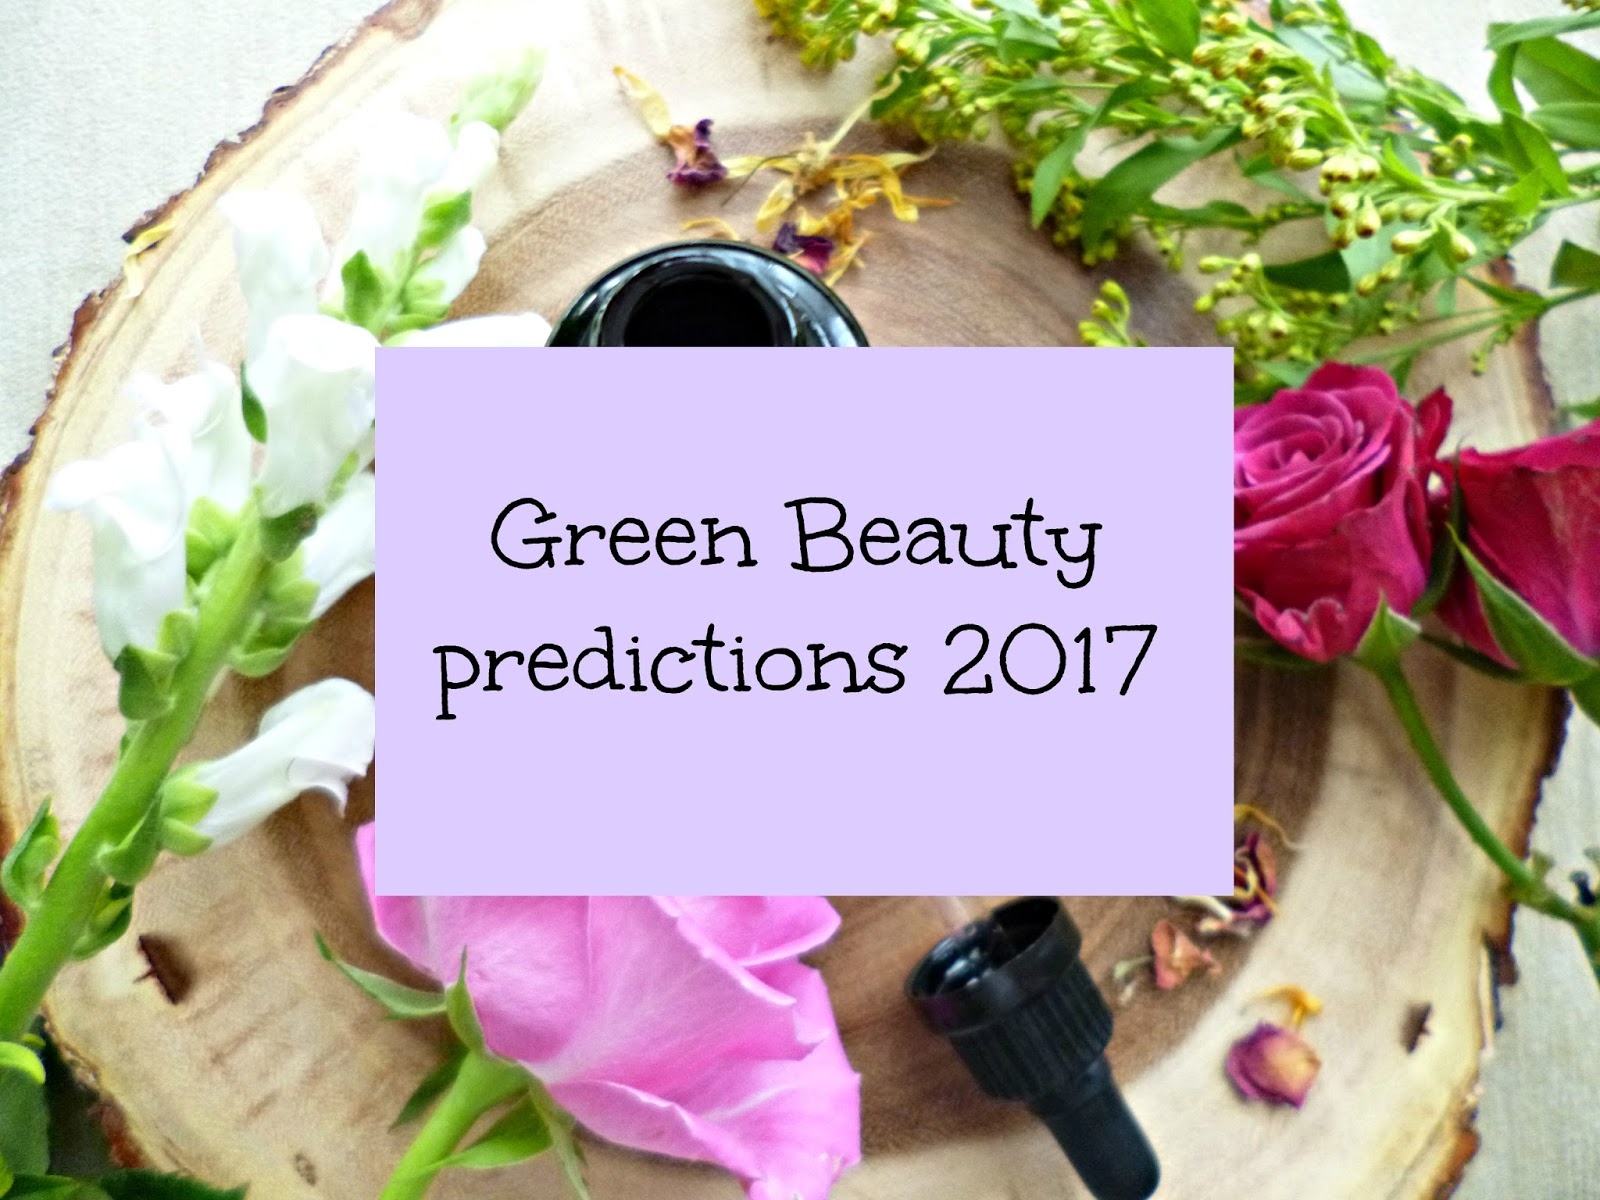 Green Beauty Predictions for 2017